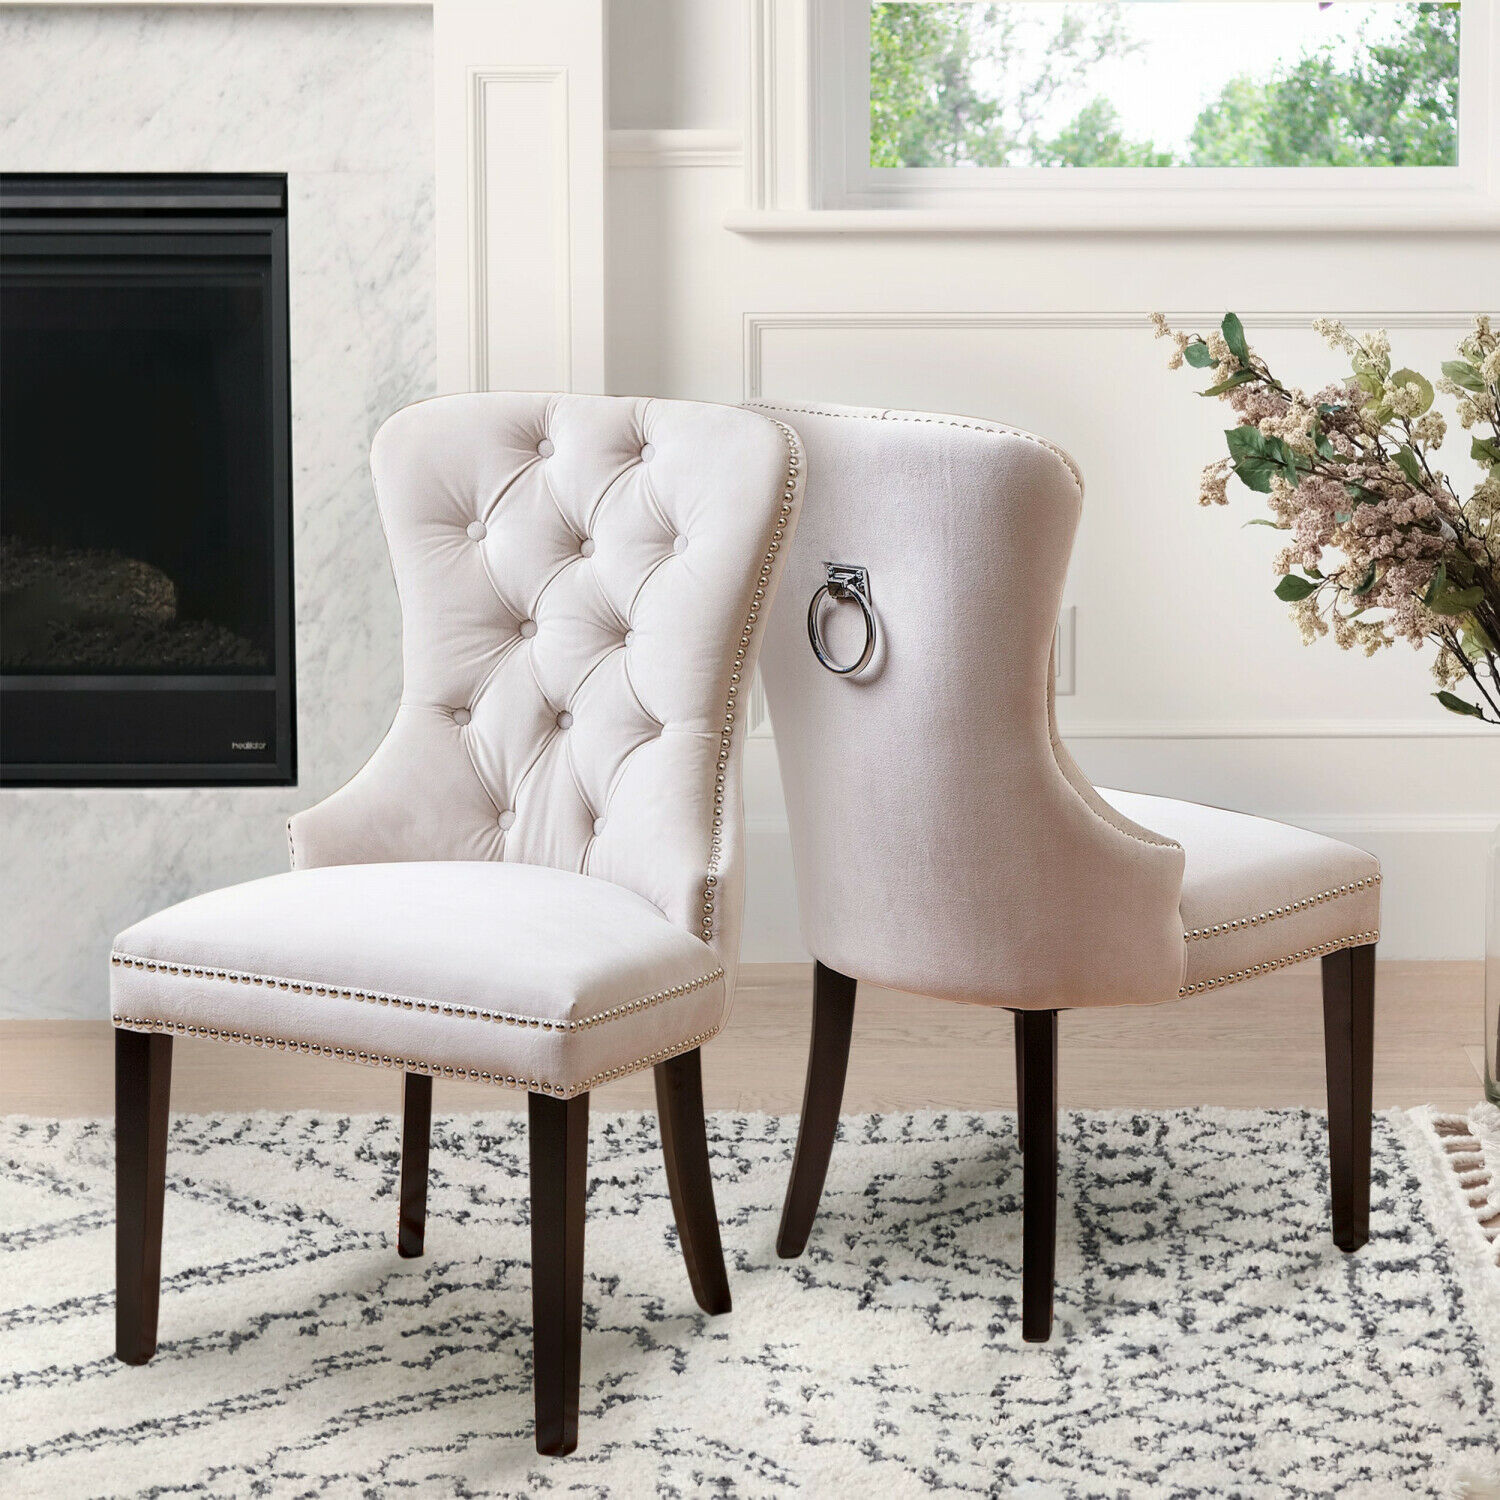 Magnificent Abbyson Versailles Tufted Velvet Dining Chair Bralicious Painted Fabric Chair Ideas Braliciousco